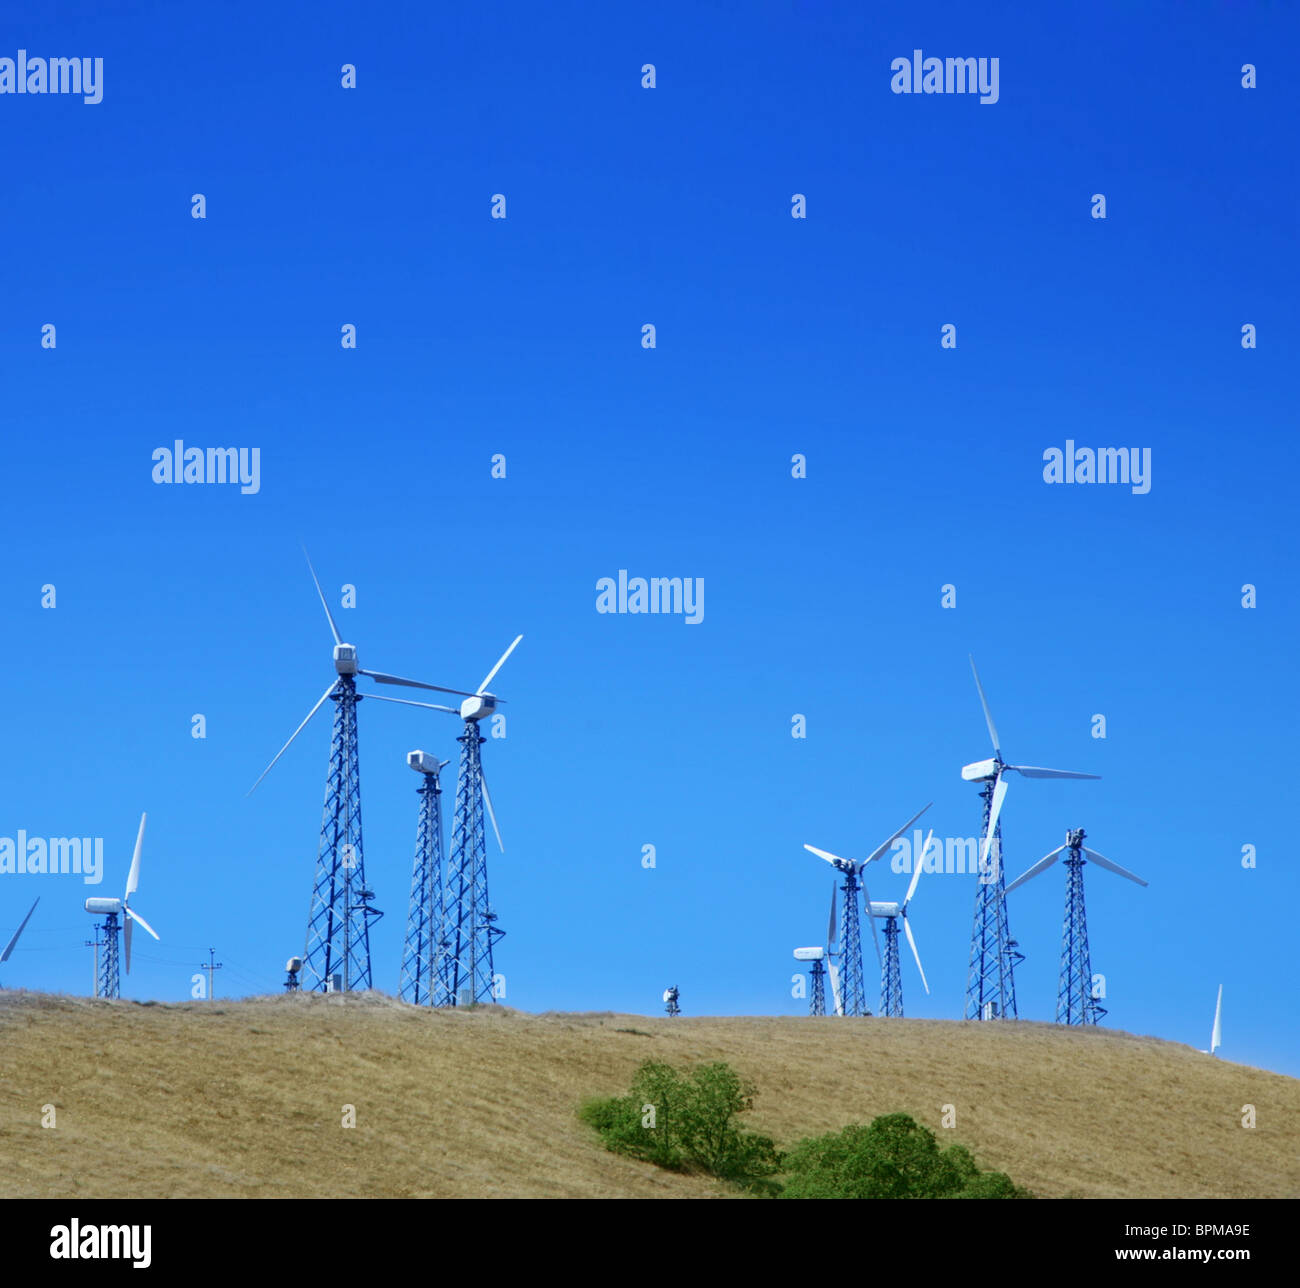 landscape with wind turbines - Stock Image